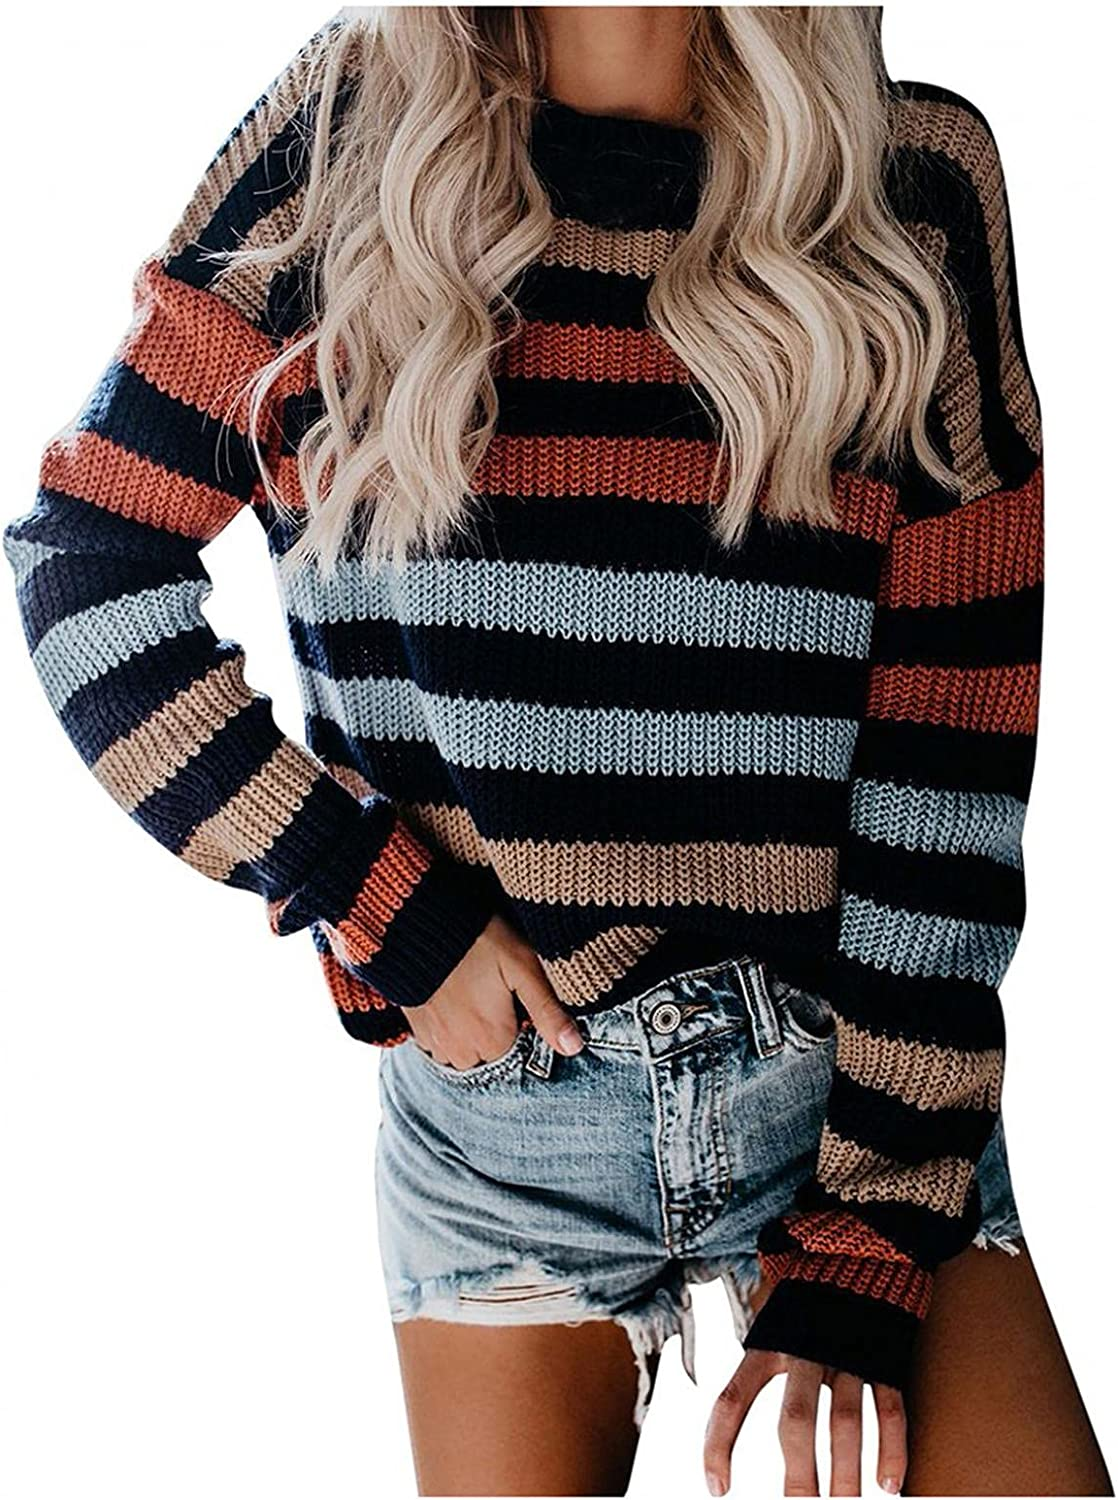 Xinantime Women's Striped Print Sweaters Round Neck Flared Long Sleeve Tops Pullover Color Block Knitted Shirt Blouse